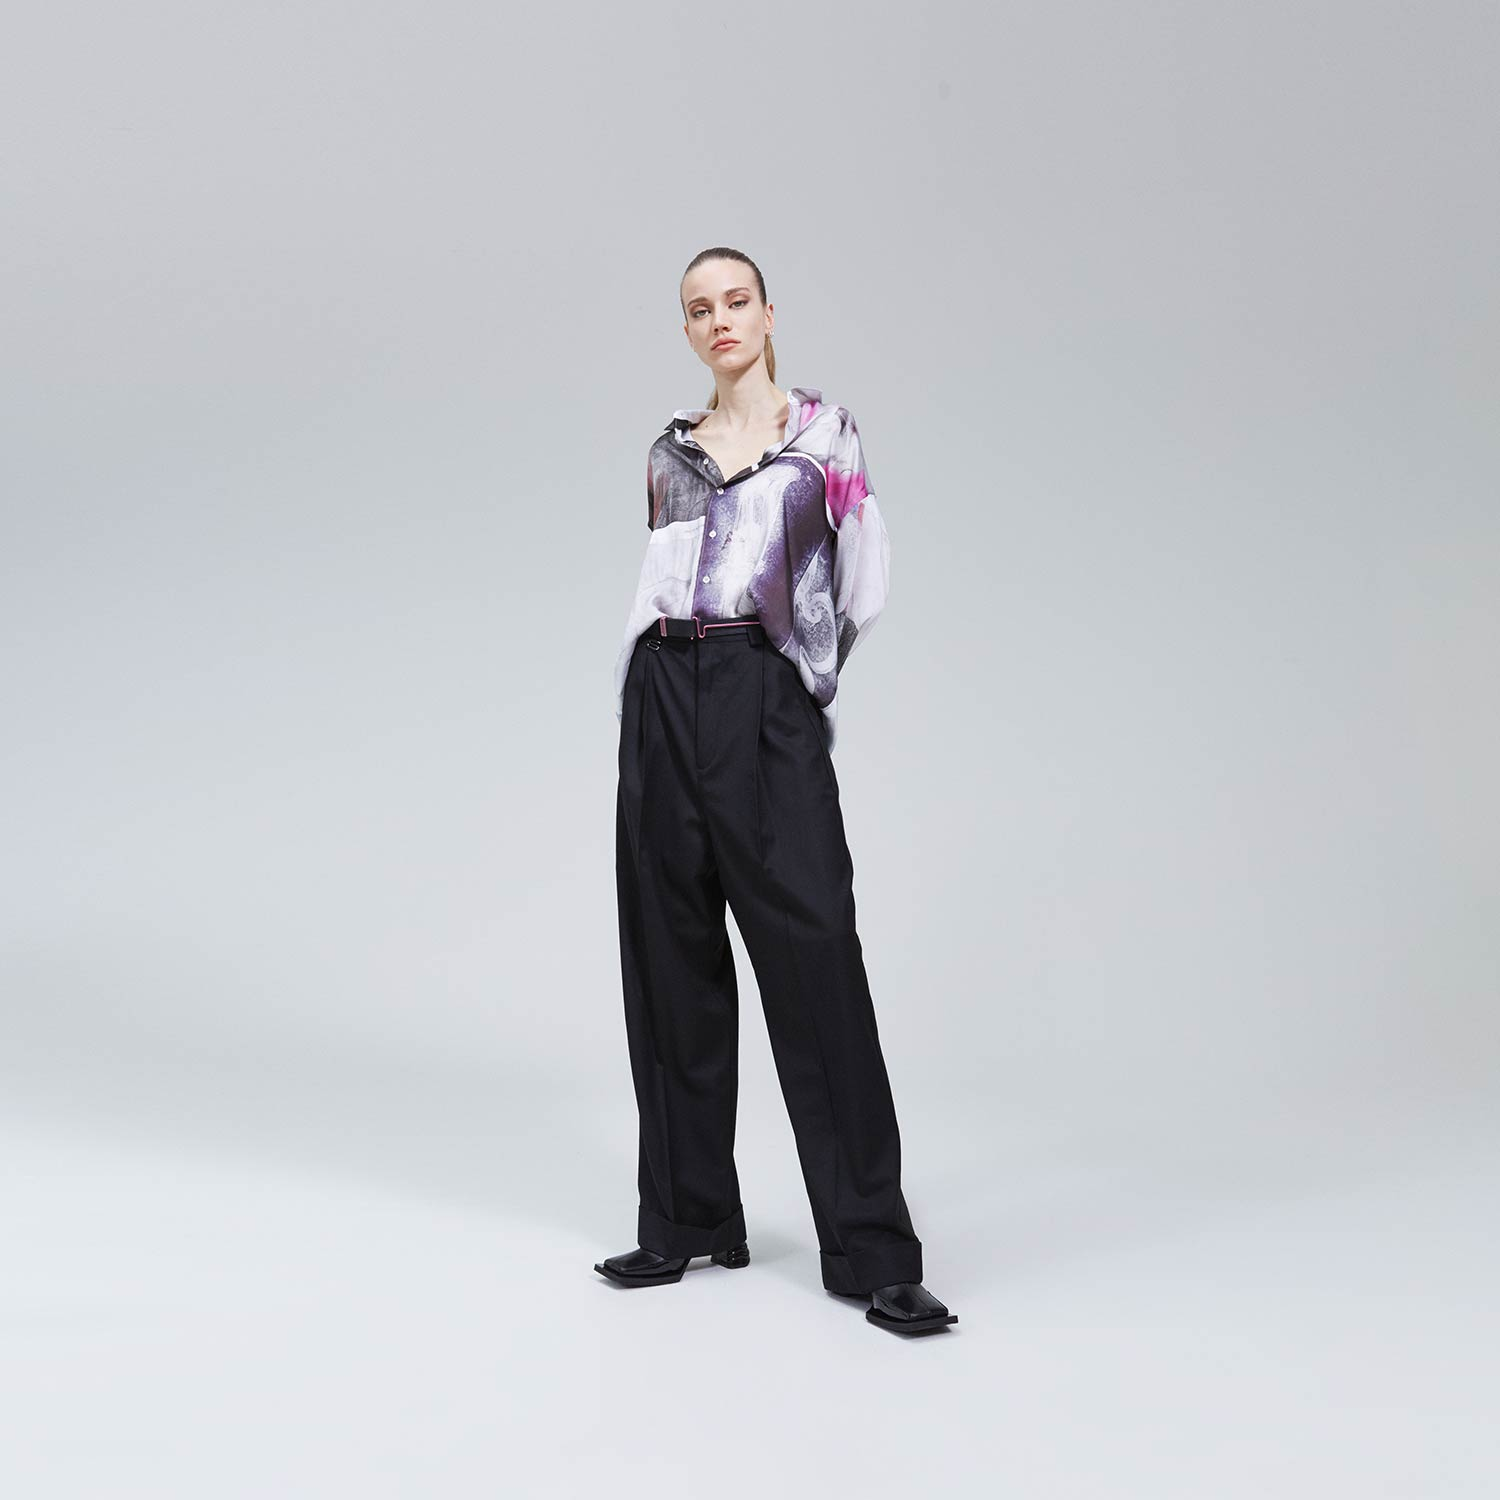 Roxy Trousers by Eytys, available on eytys.com for SEK3000 Bella Hadid Pants Exact Product